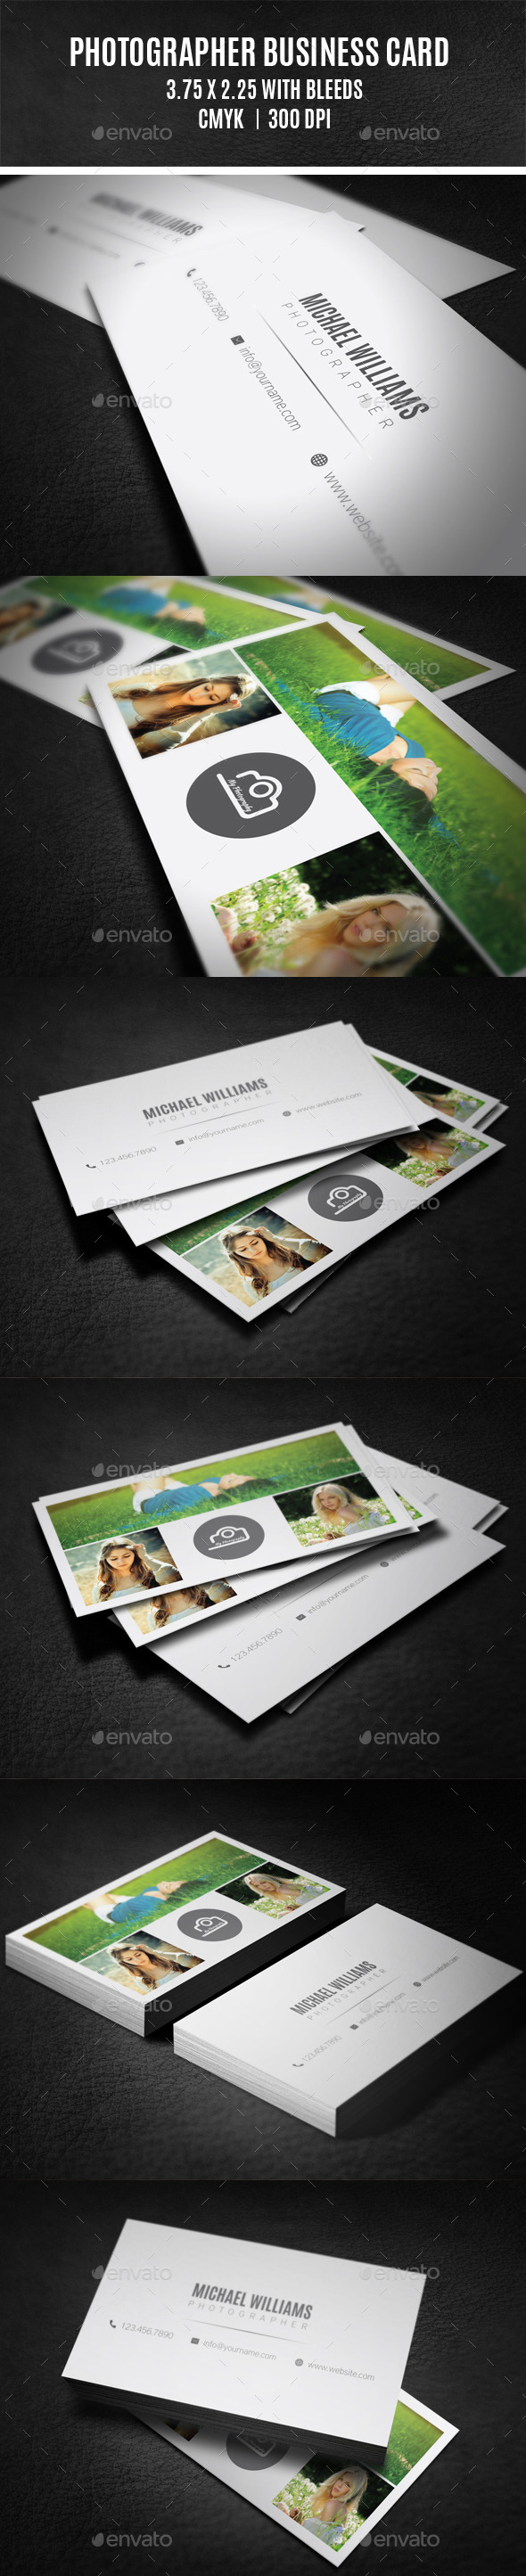 GraphicRiver Photographer Business Card 9305972